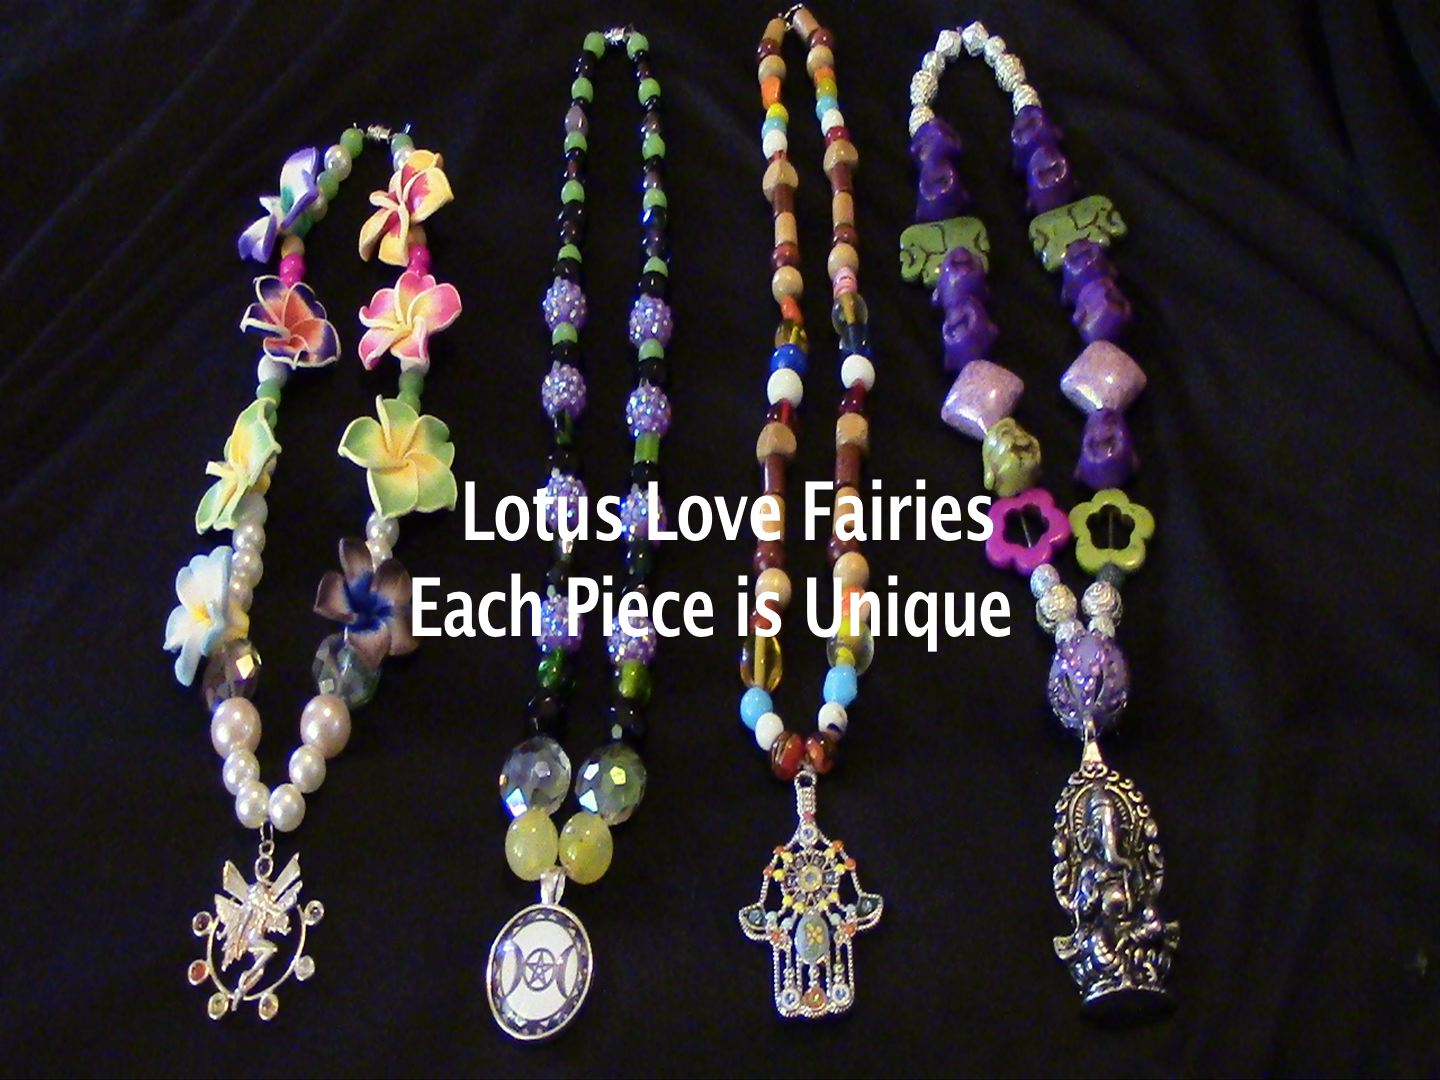 Lotus Love Fairies